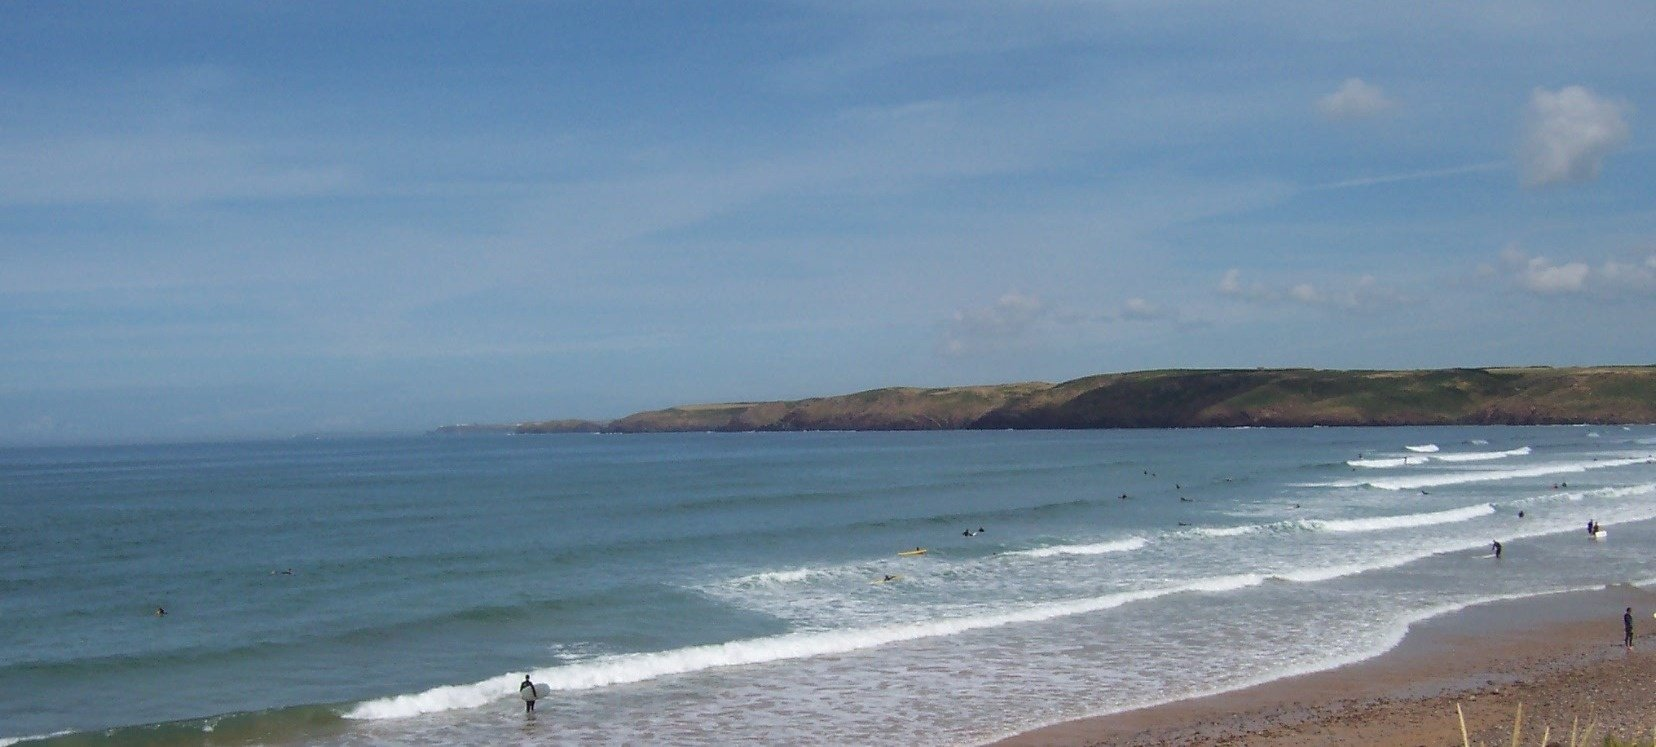 Drifter's photo of Freshwater West